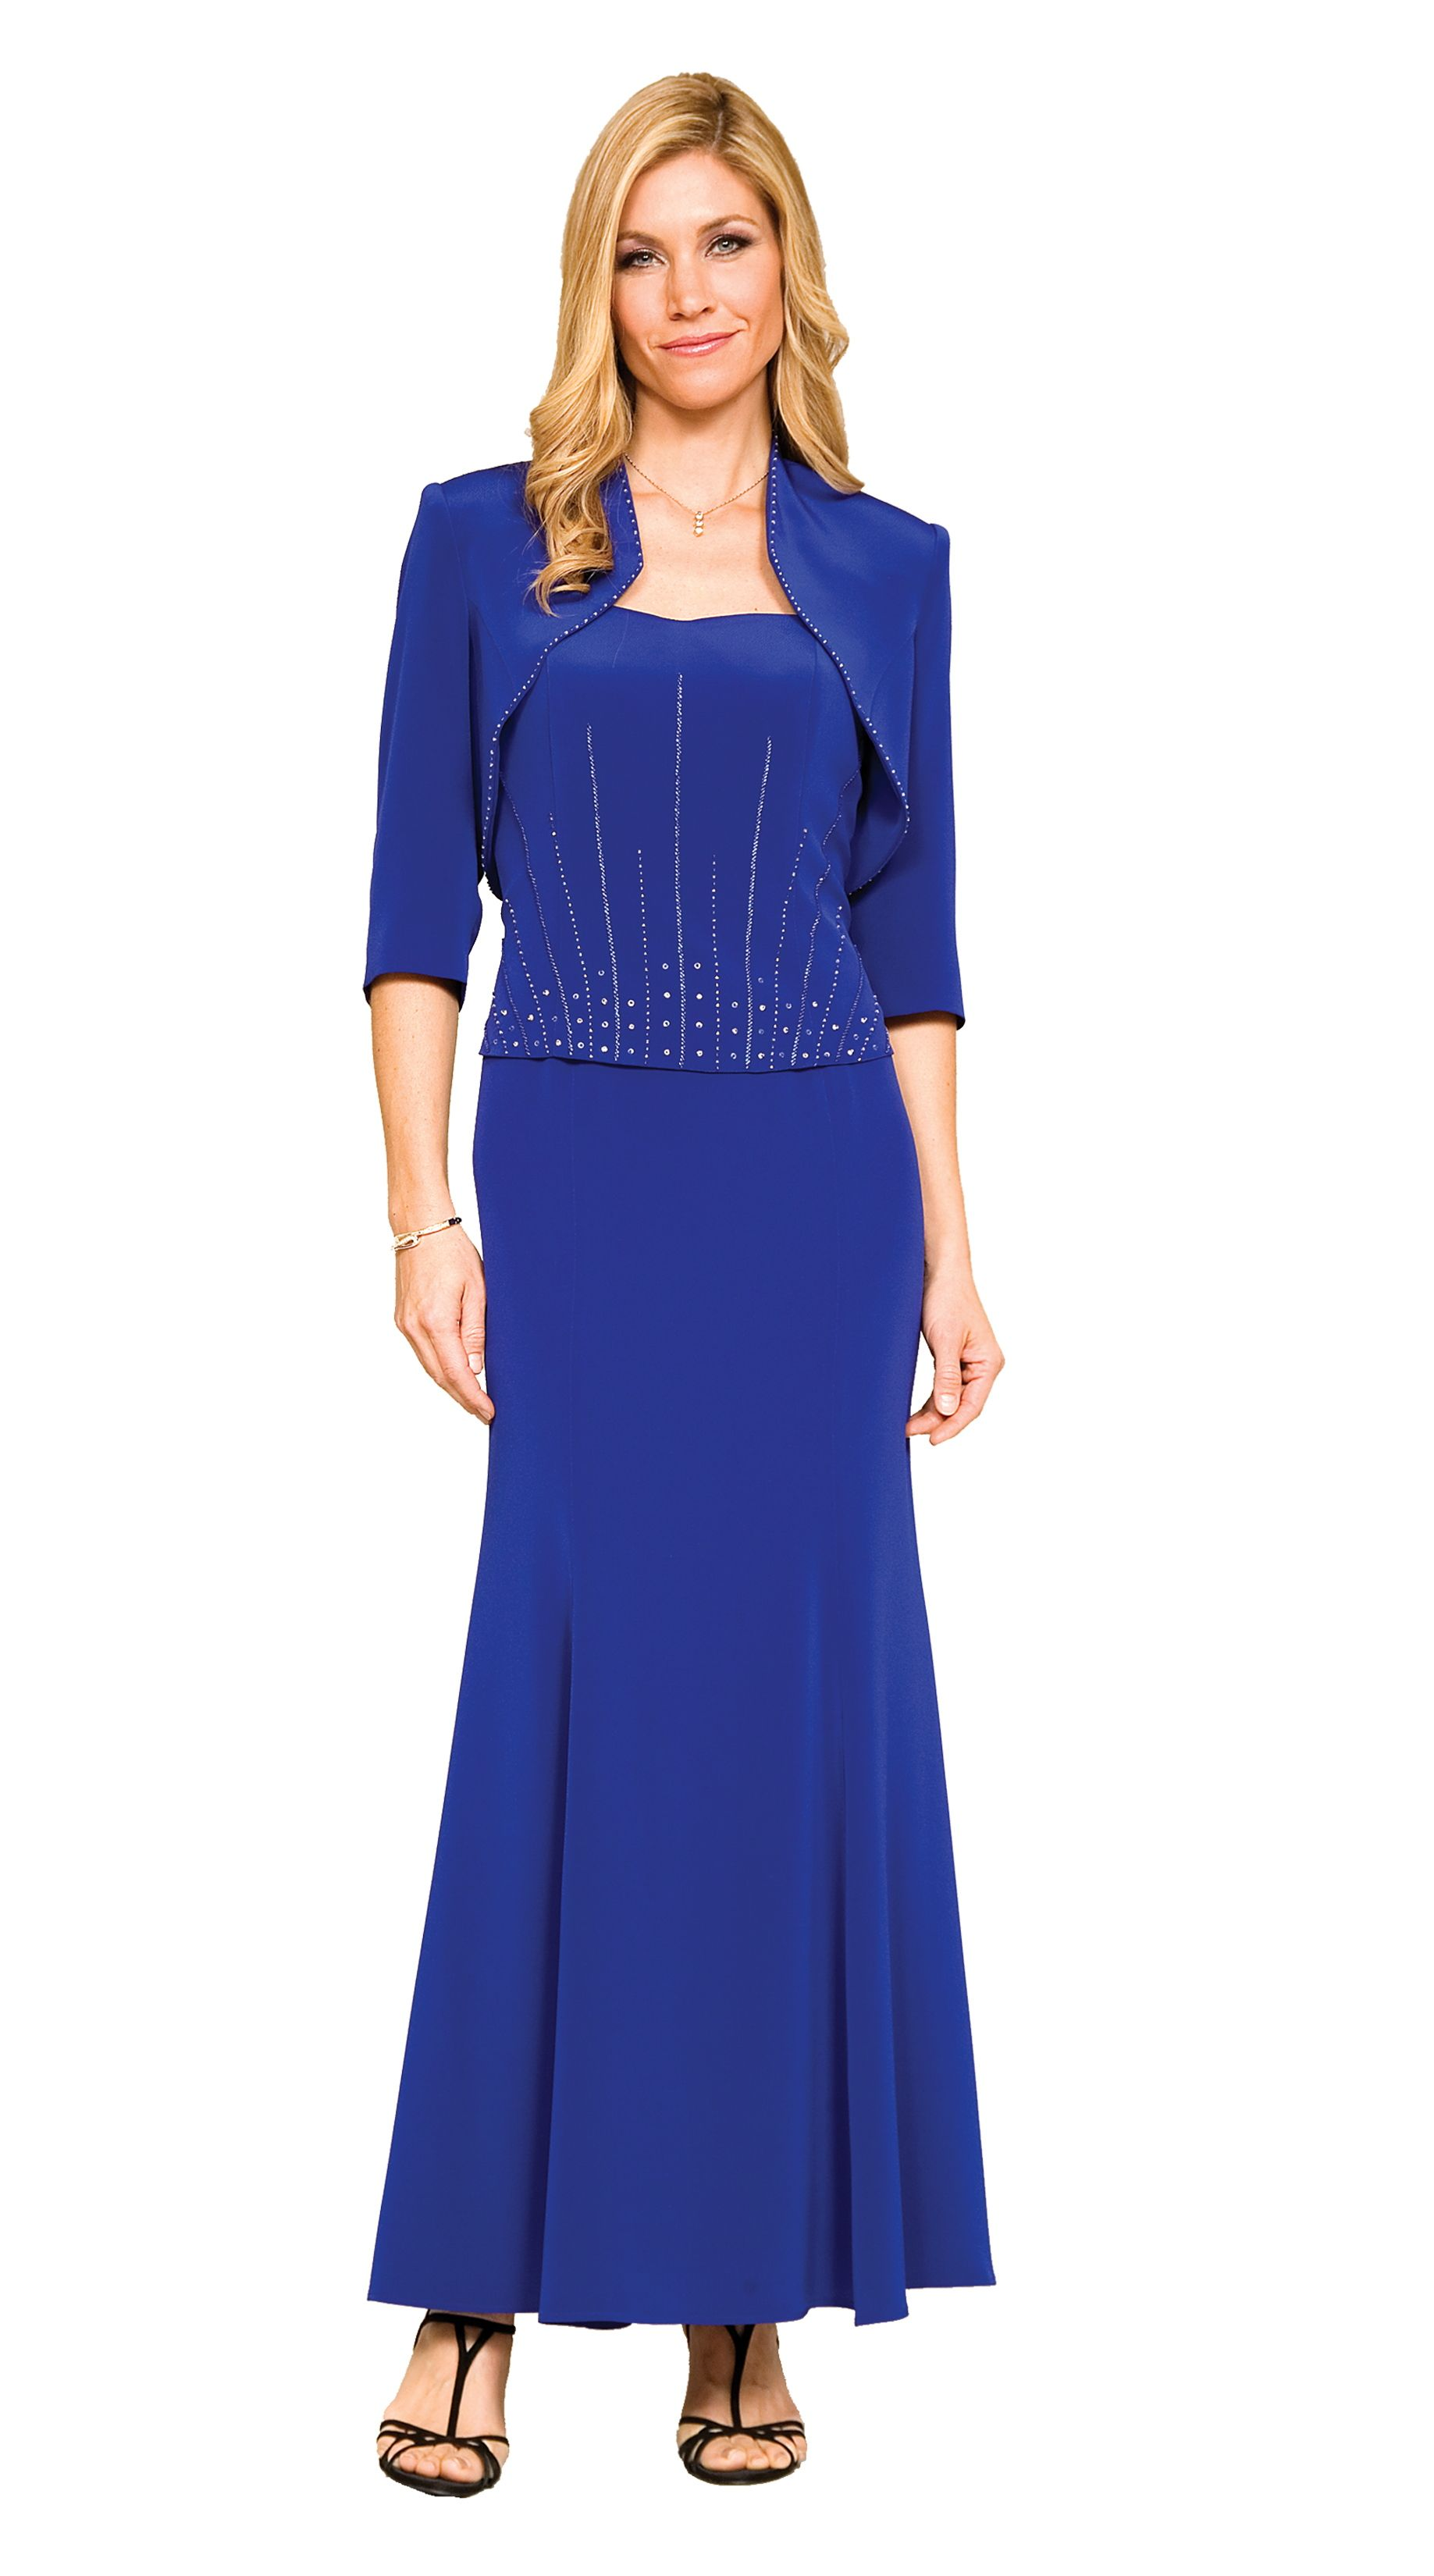 Plus Size Formal Dresses Consignment